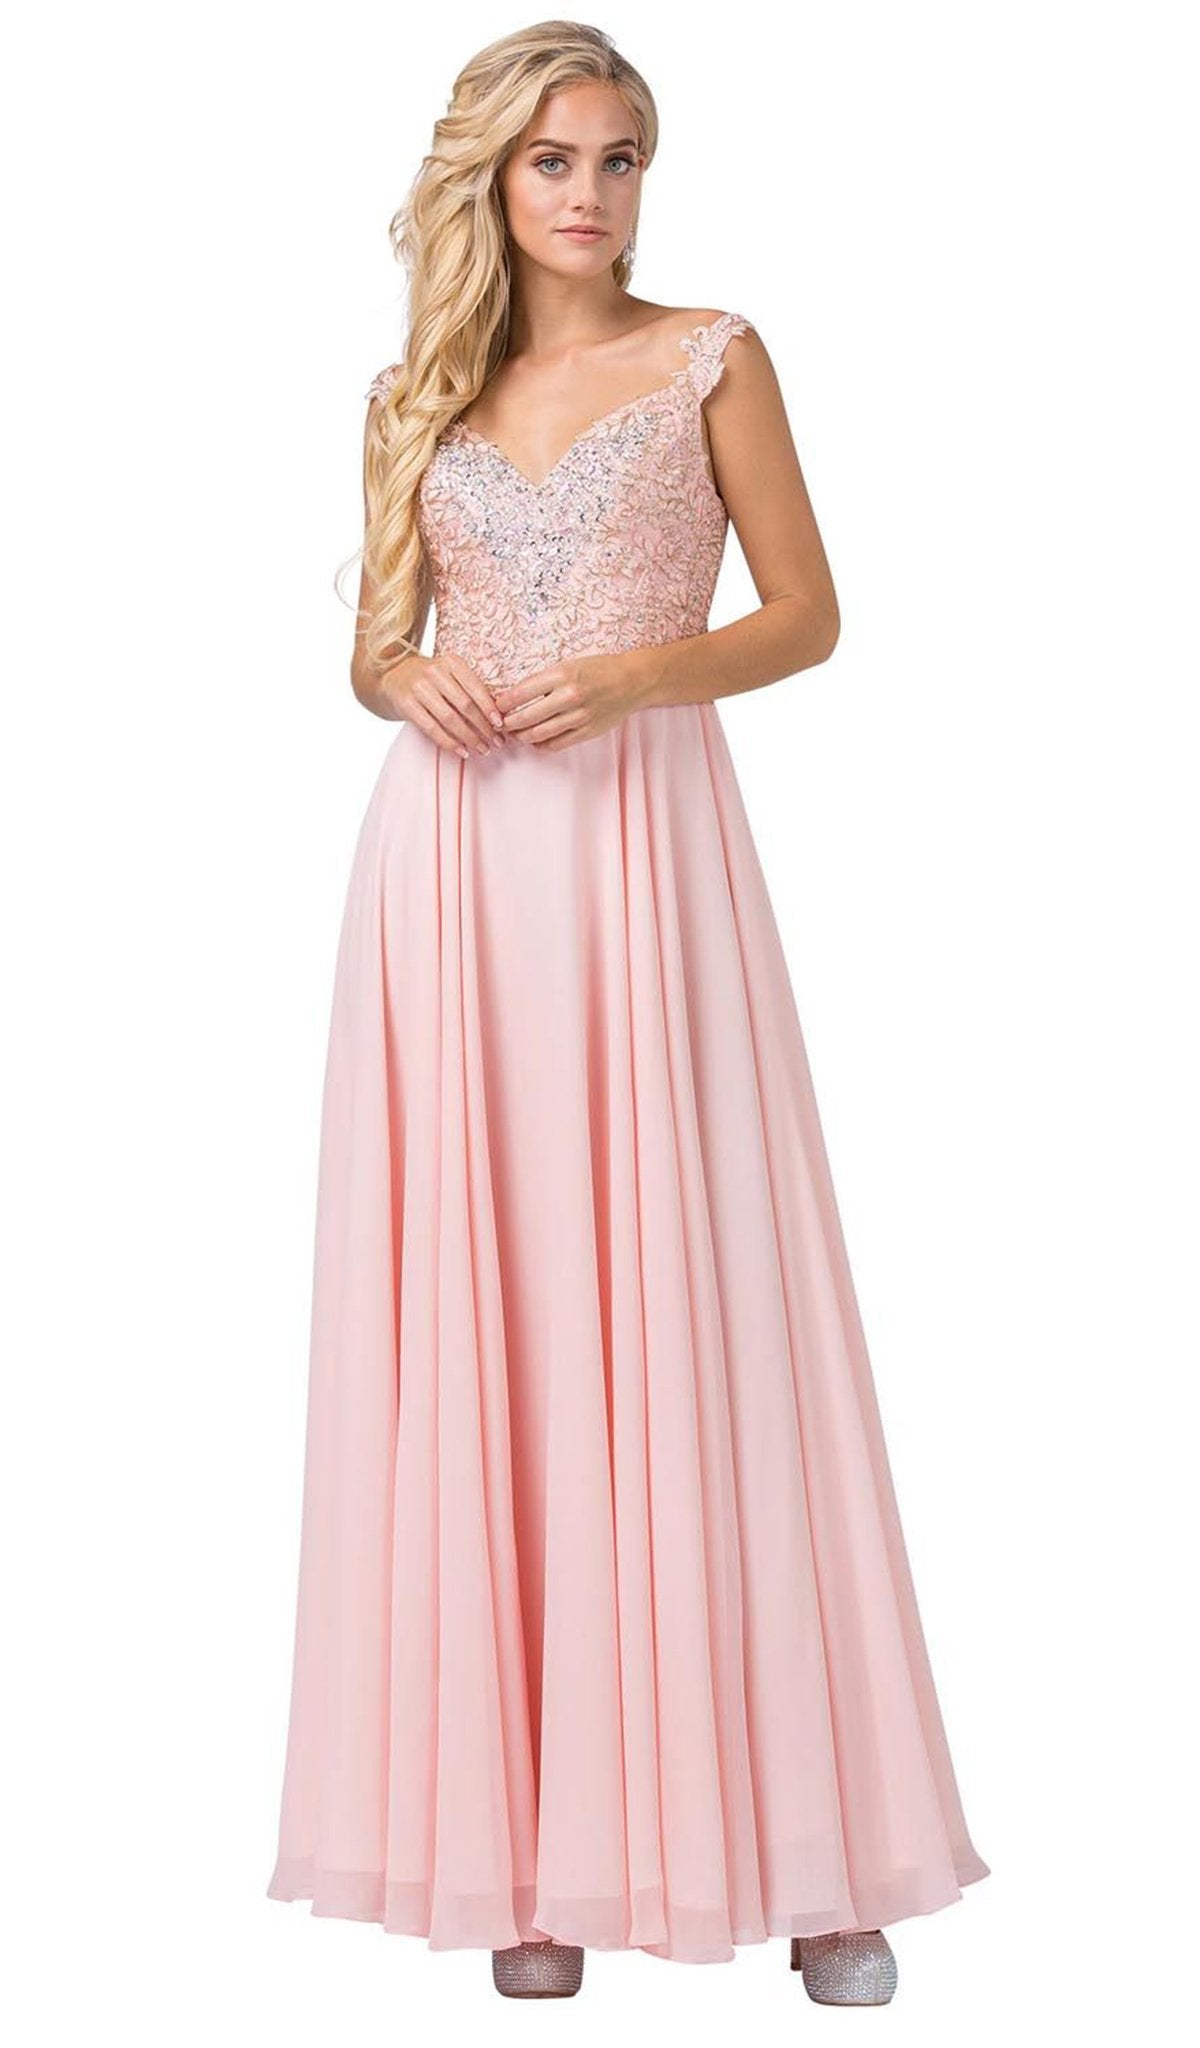 Dancing Queen - 2818 Beaded Lace Bodice Lace-Up Back Chiffon Gown In Pink